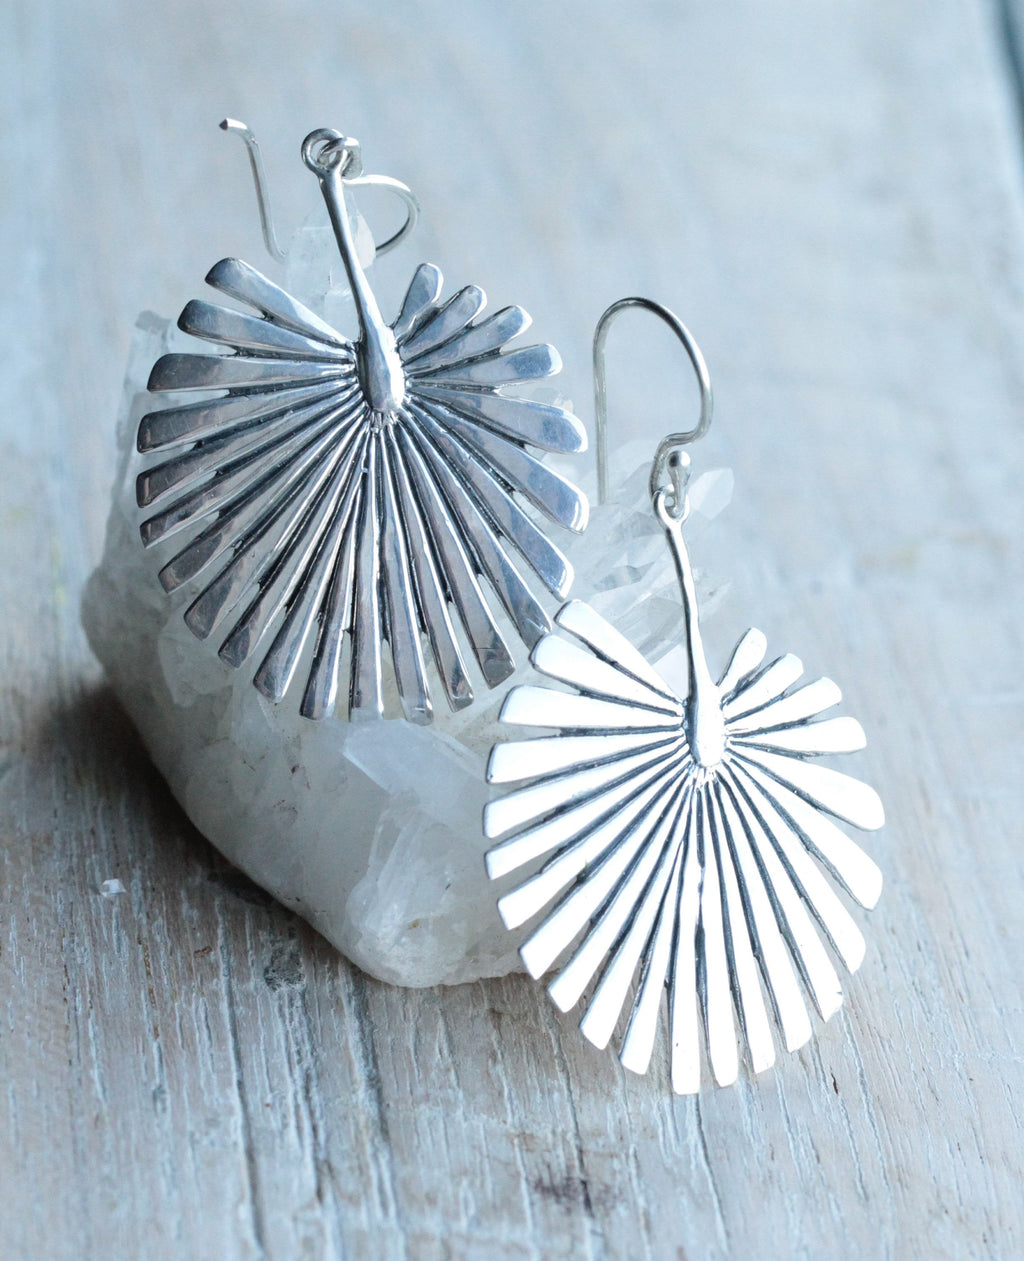 Palm Earrings, Silver Palm Leaf Earrings, Tropical Style. Tropical Jewelry, Trendy Jewelry, Silver Earrings, Large Palm Earrings, Large